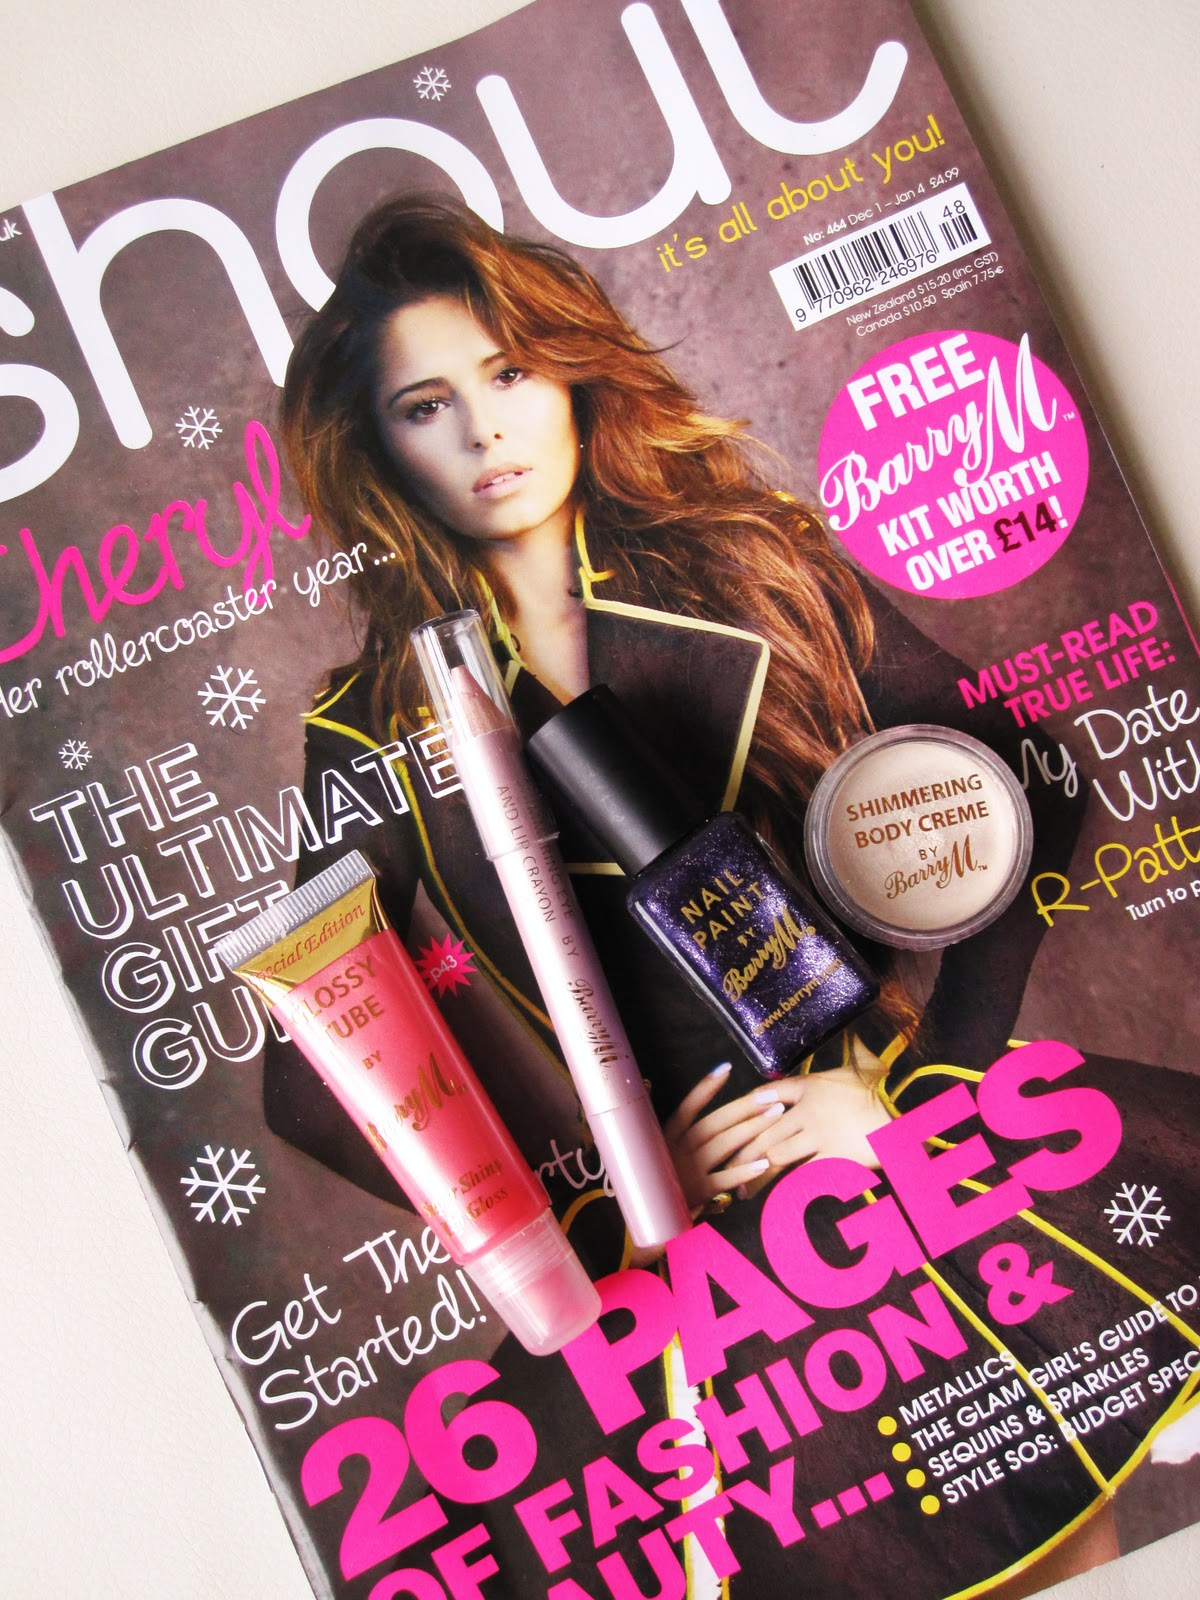 Free Barry M Makeup With Shout Magazine!